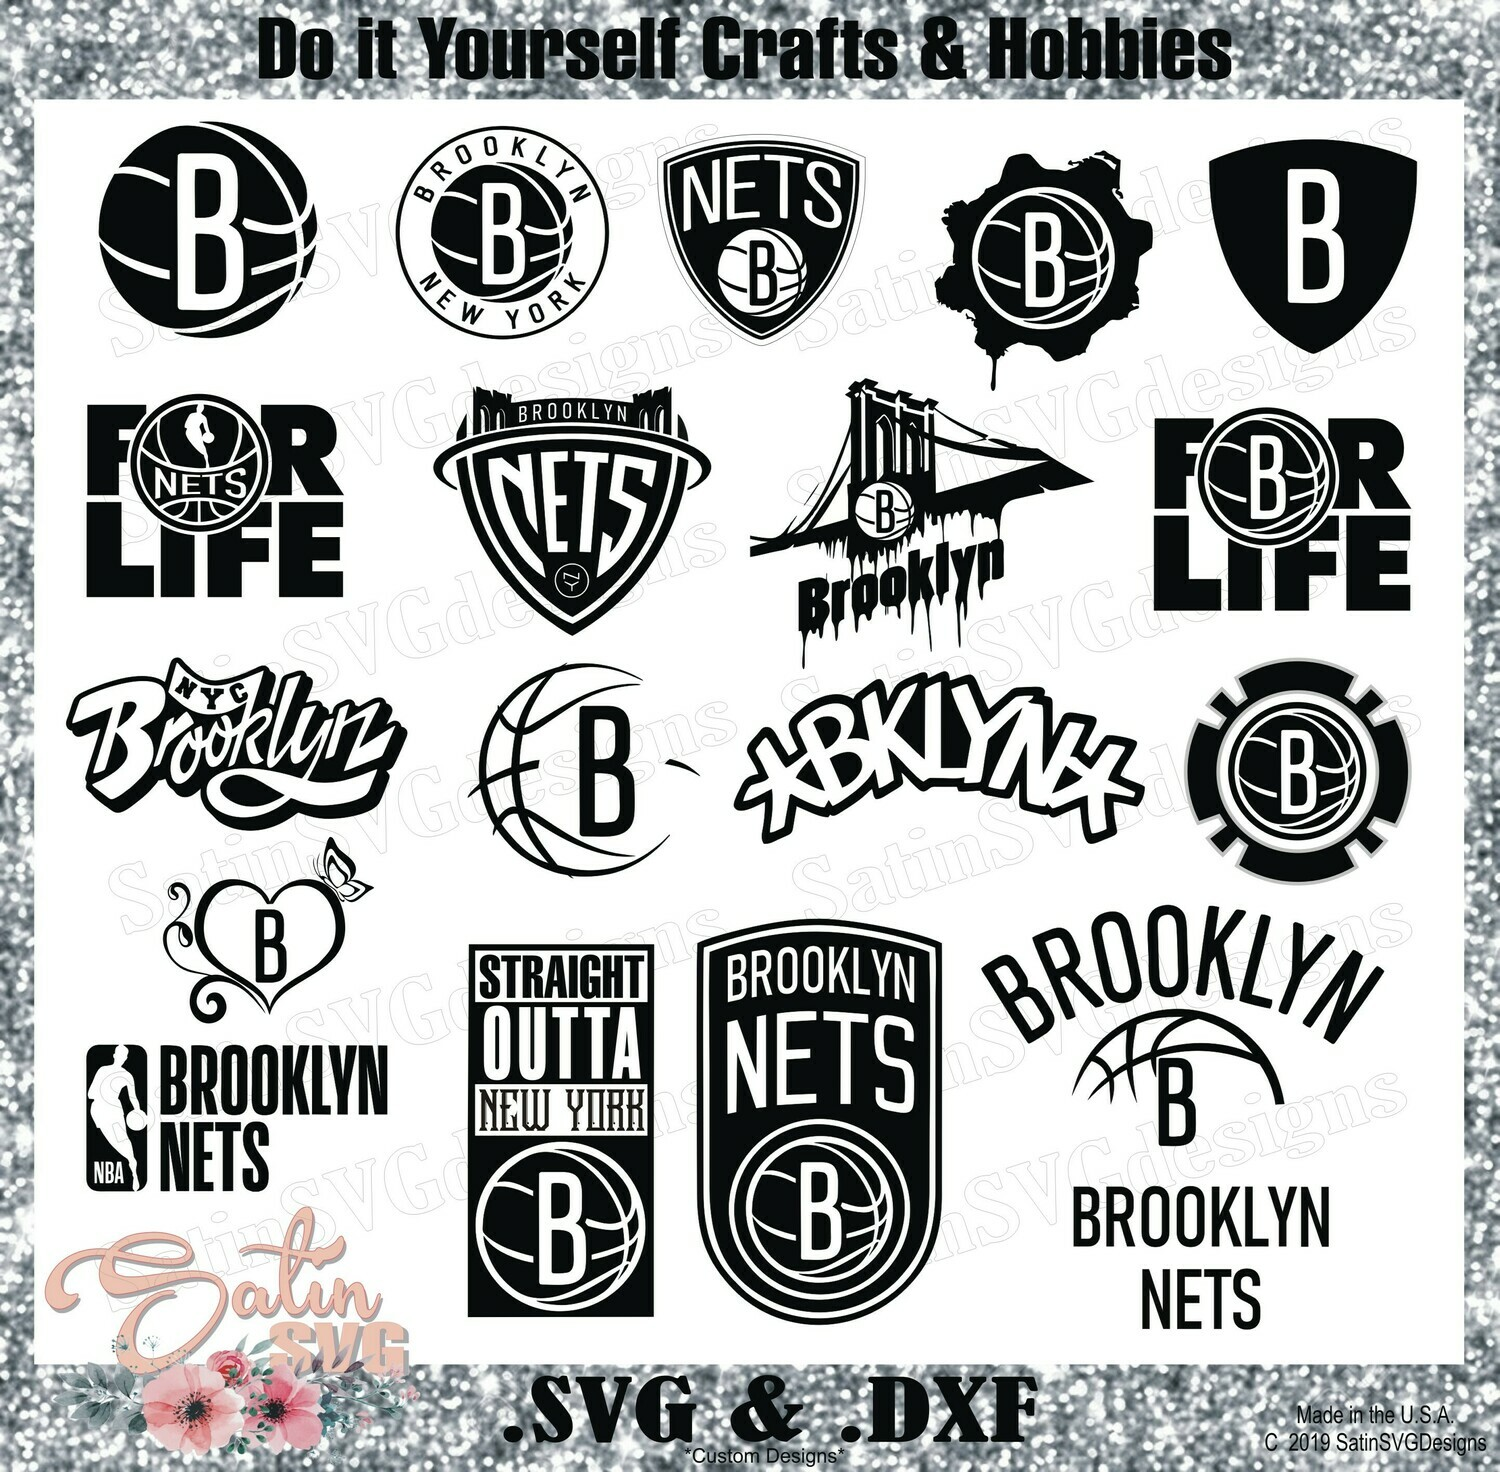 Brooklyn Nets NEW Custom NBA Basketball Designs. SVG Files, Cricut, Silhouette Studio, Digital Cut Files, Infusible Ink